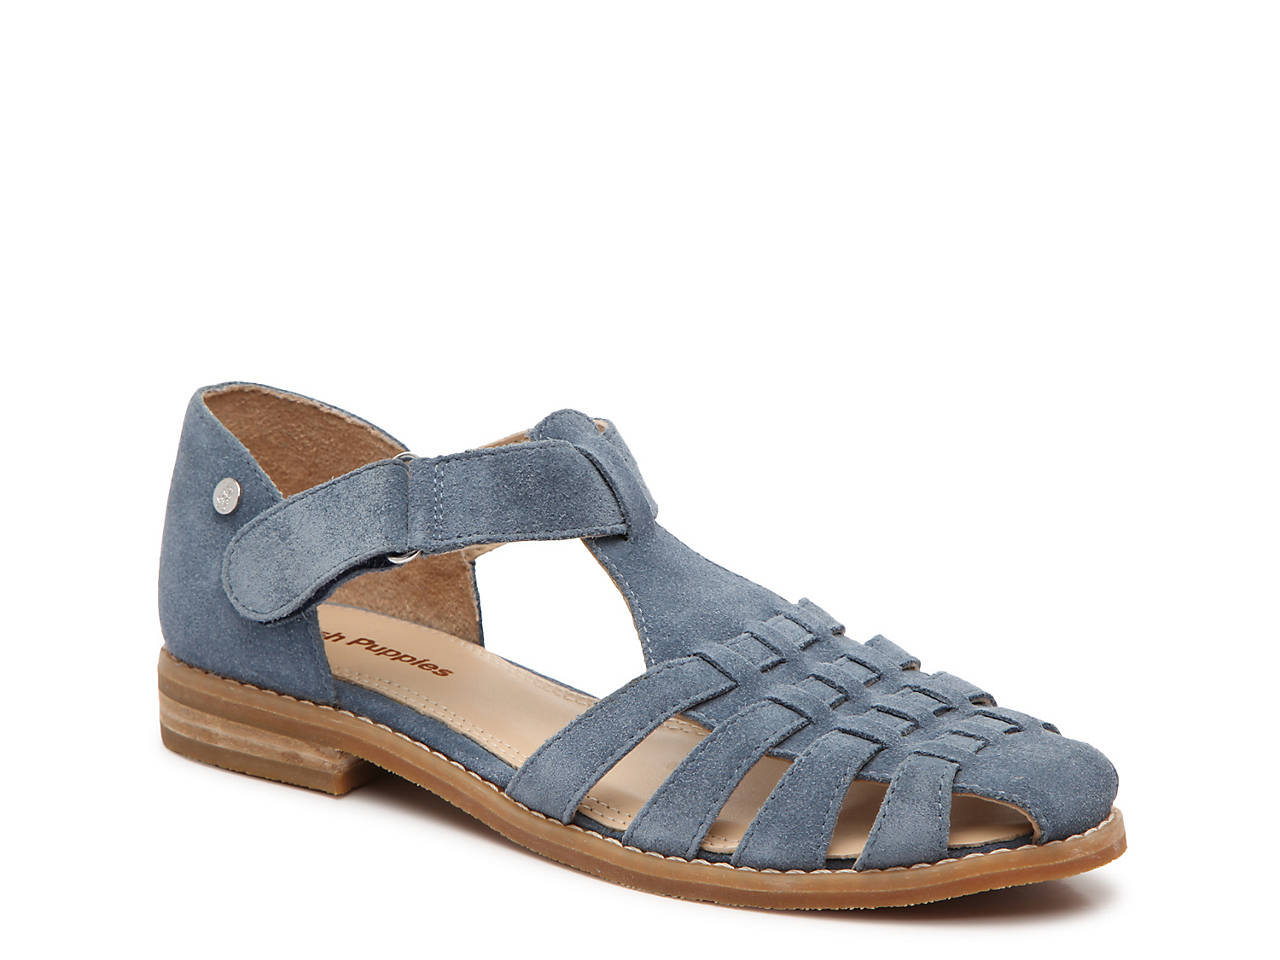 5a78636fc2a3 Hush Puppies Chardon Sandal Women s Shoes